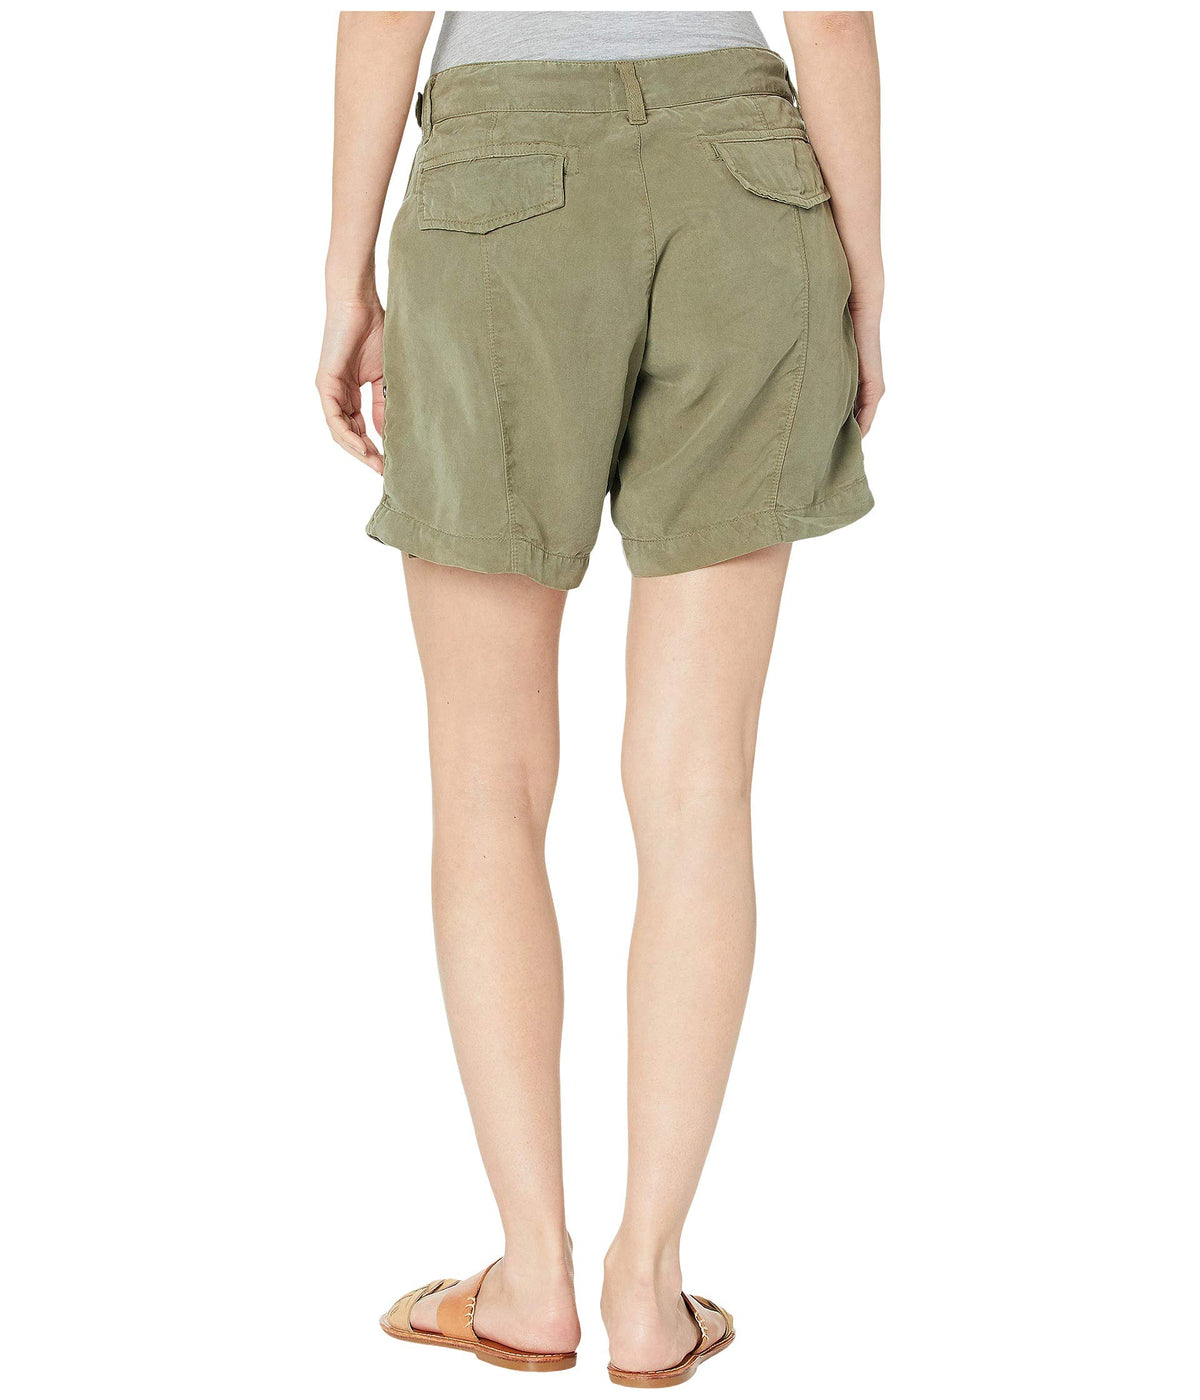 Washed Tencel Scout Shorts with Solid Twill Tape Trim